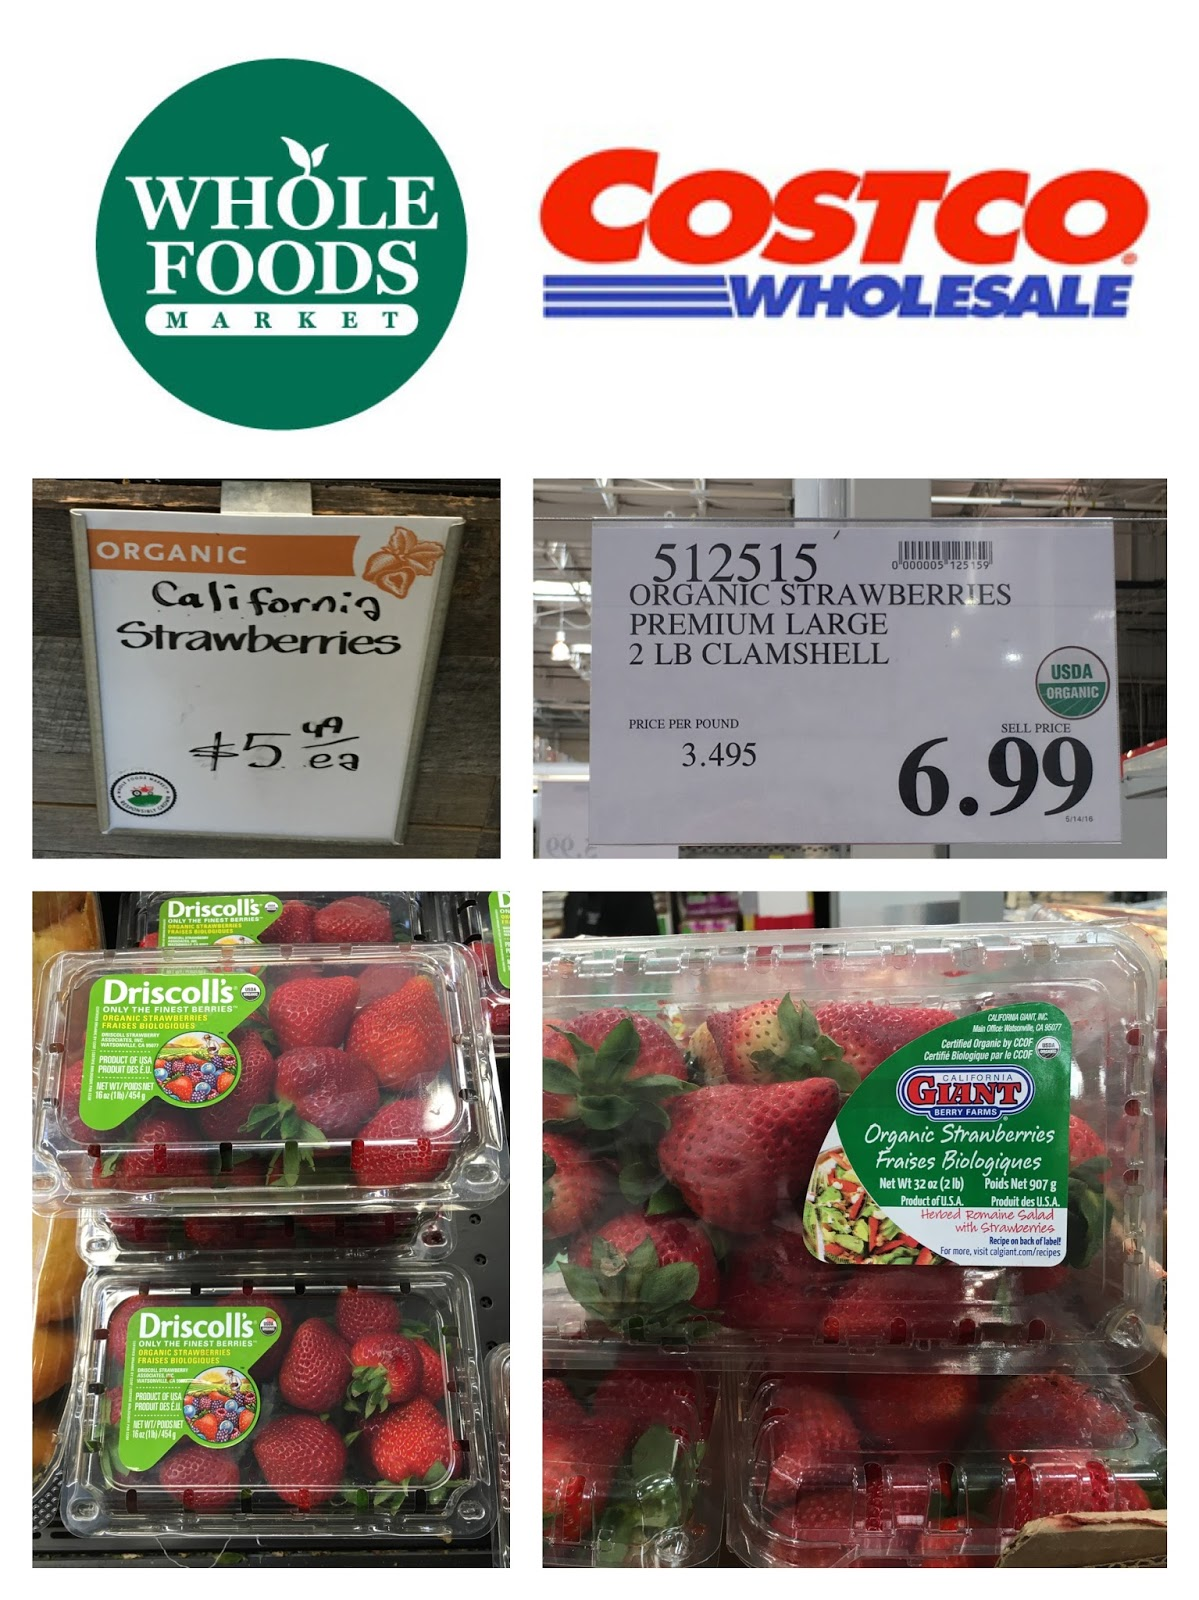 Whole Foods sells 1 lb. containers of organic strawberries for $5.49. & the Costco Connoisseur: May 2016